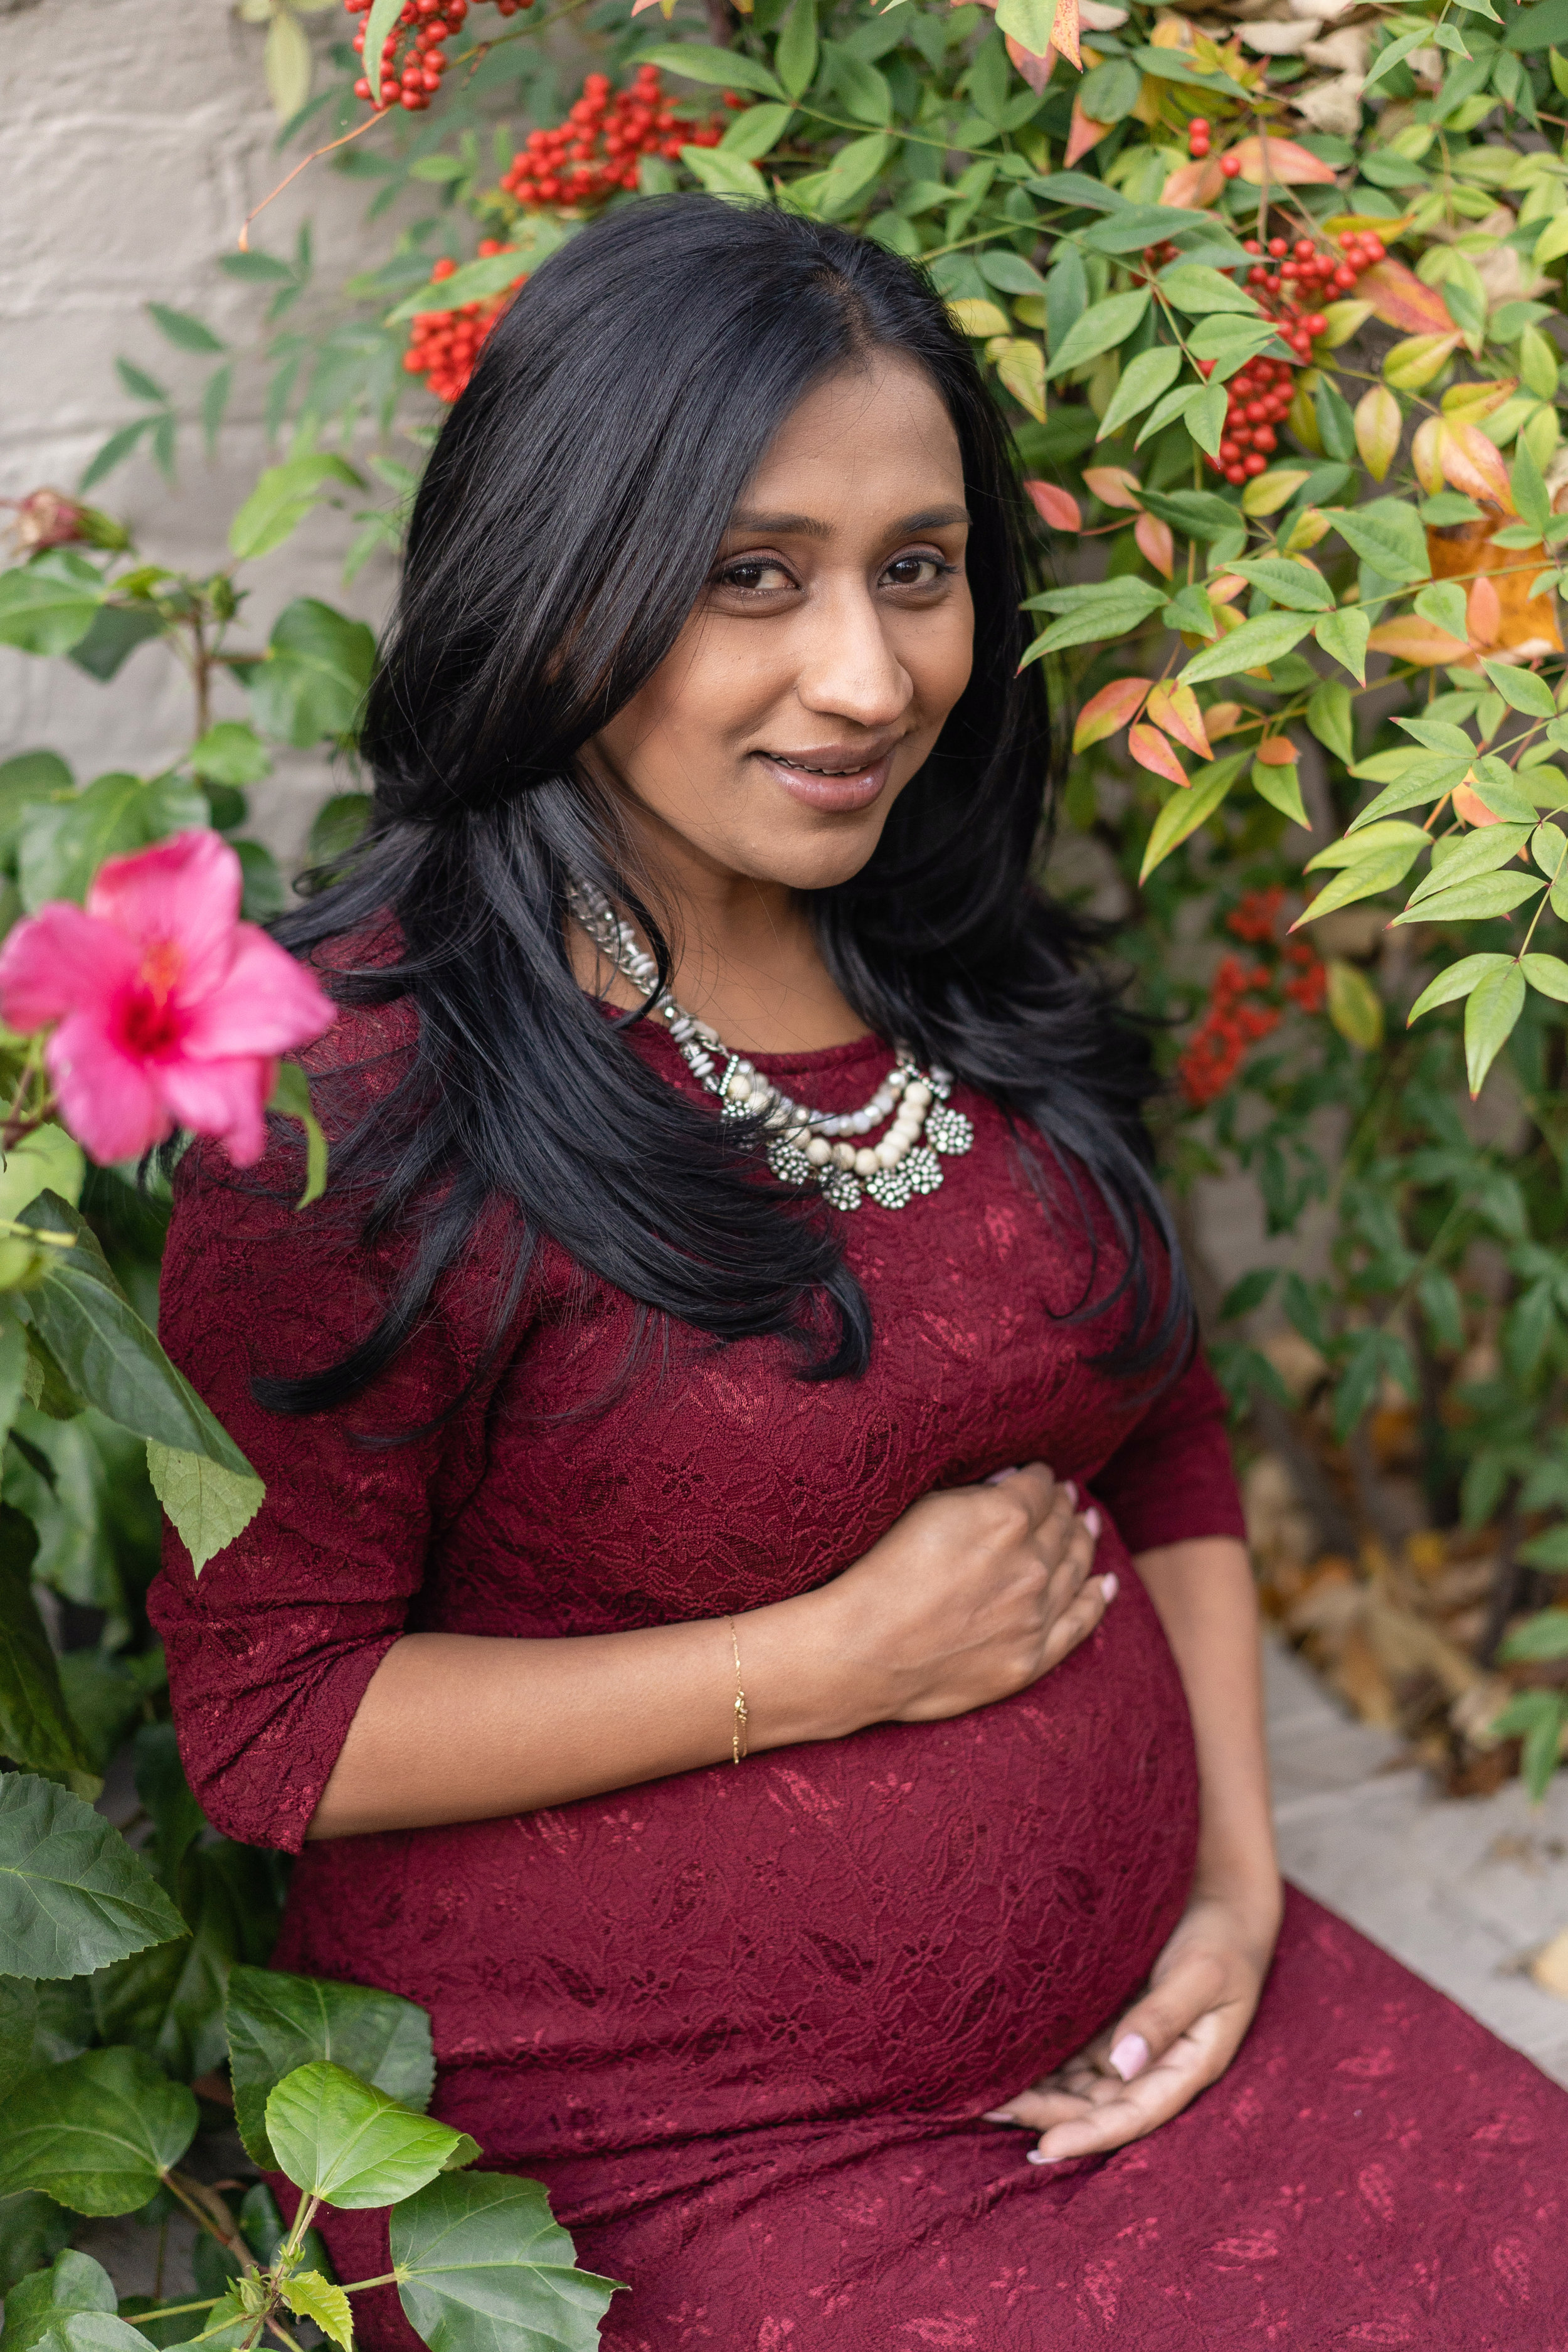 Mom hugs her belly and sits in a gorgeous display of flowers for her maternity session in Washington DC